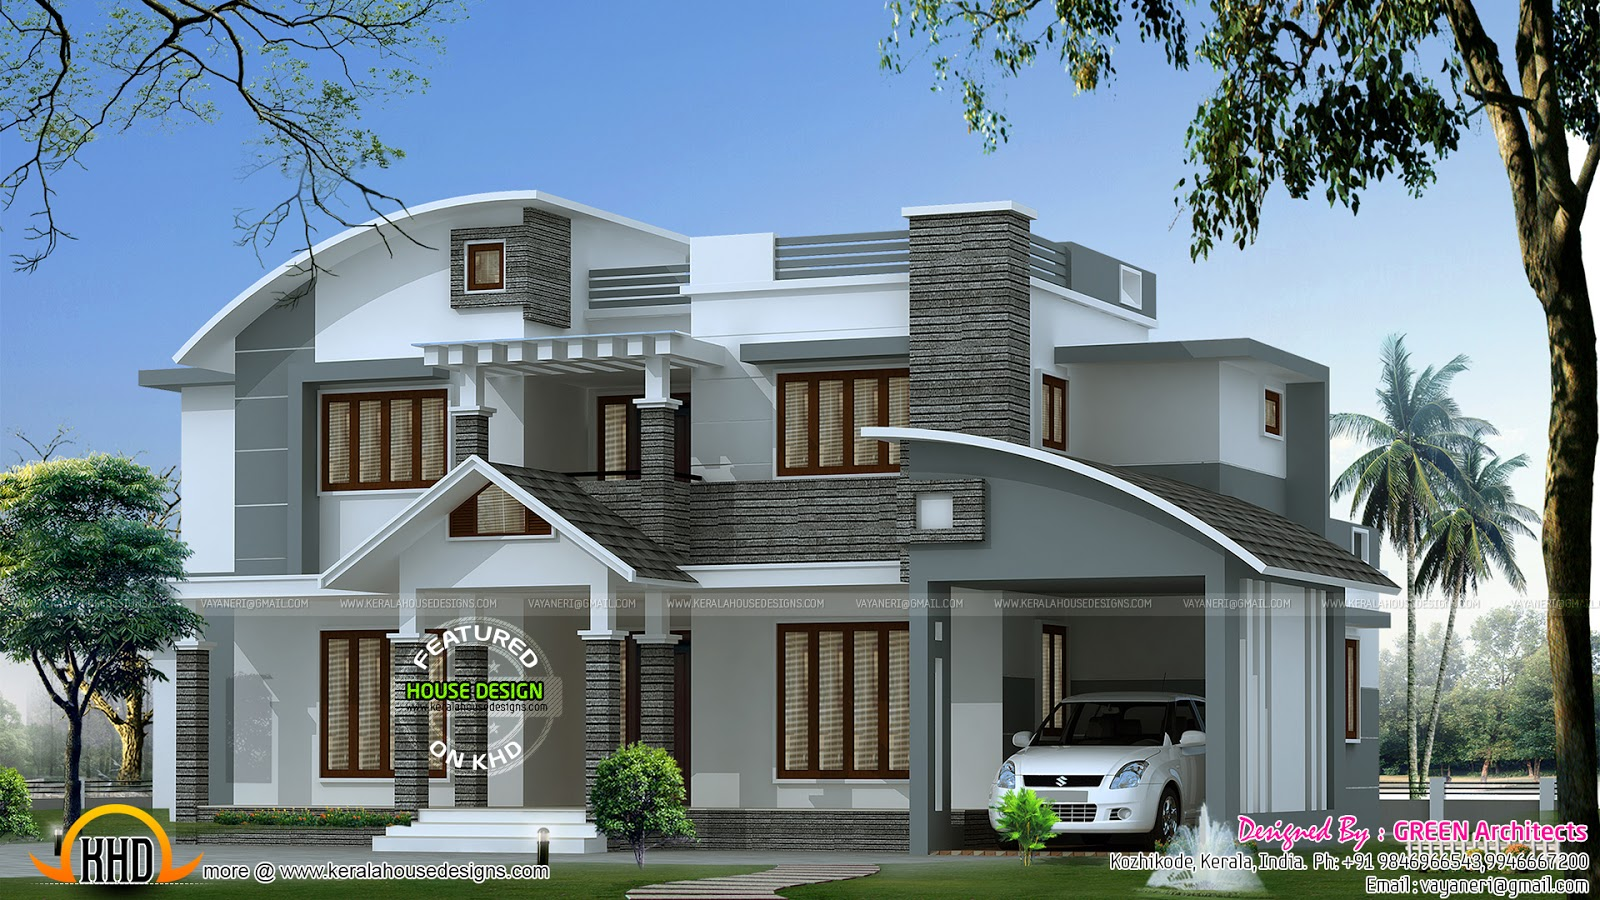 Contemporary mix house in 2500 sq ft kerala home design for 3000 sq ft house plans kerala